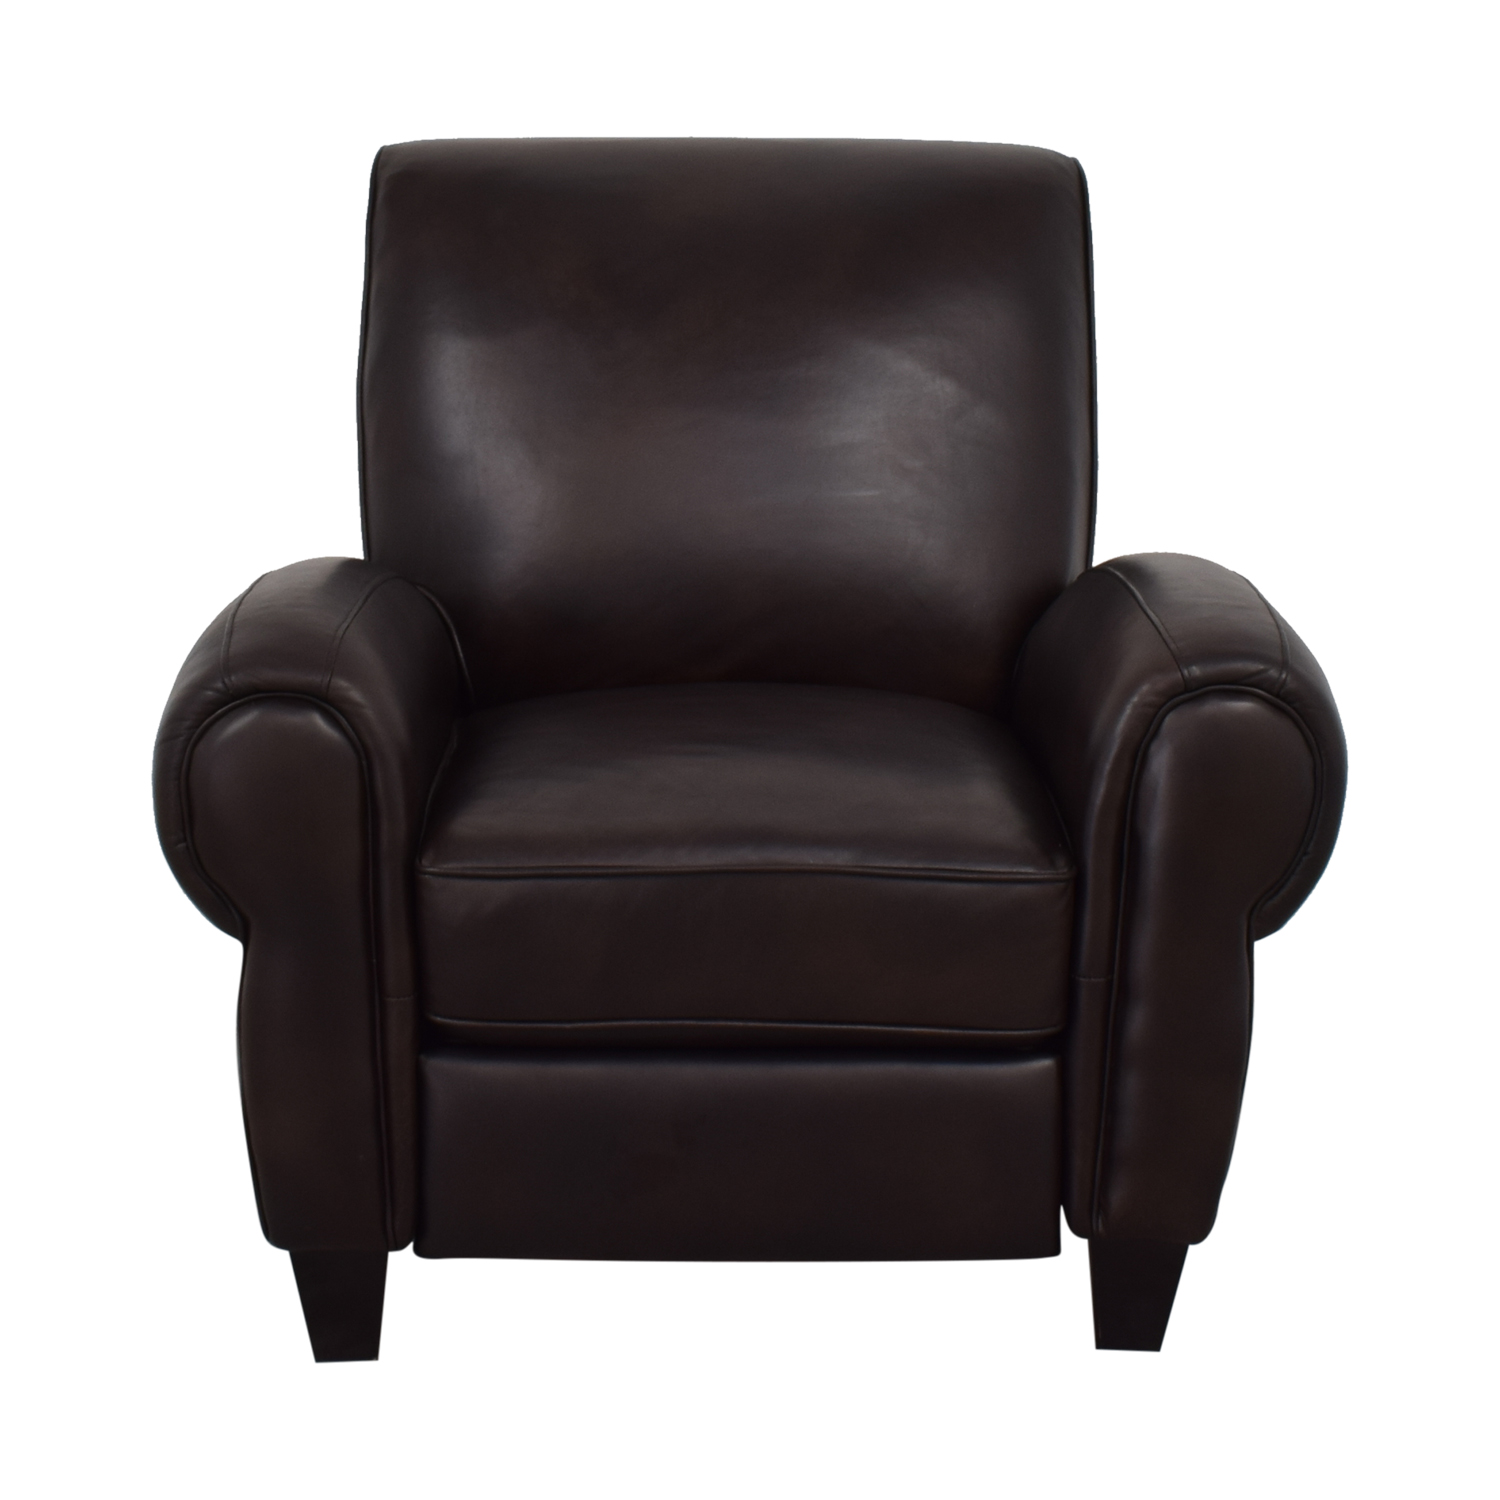 buy At Home Designs Ambassador Glider Recliner At Home Designs Recliners